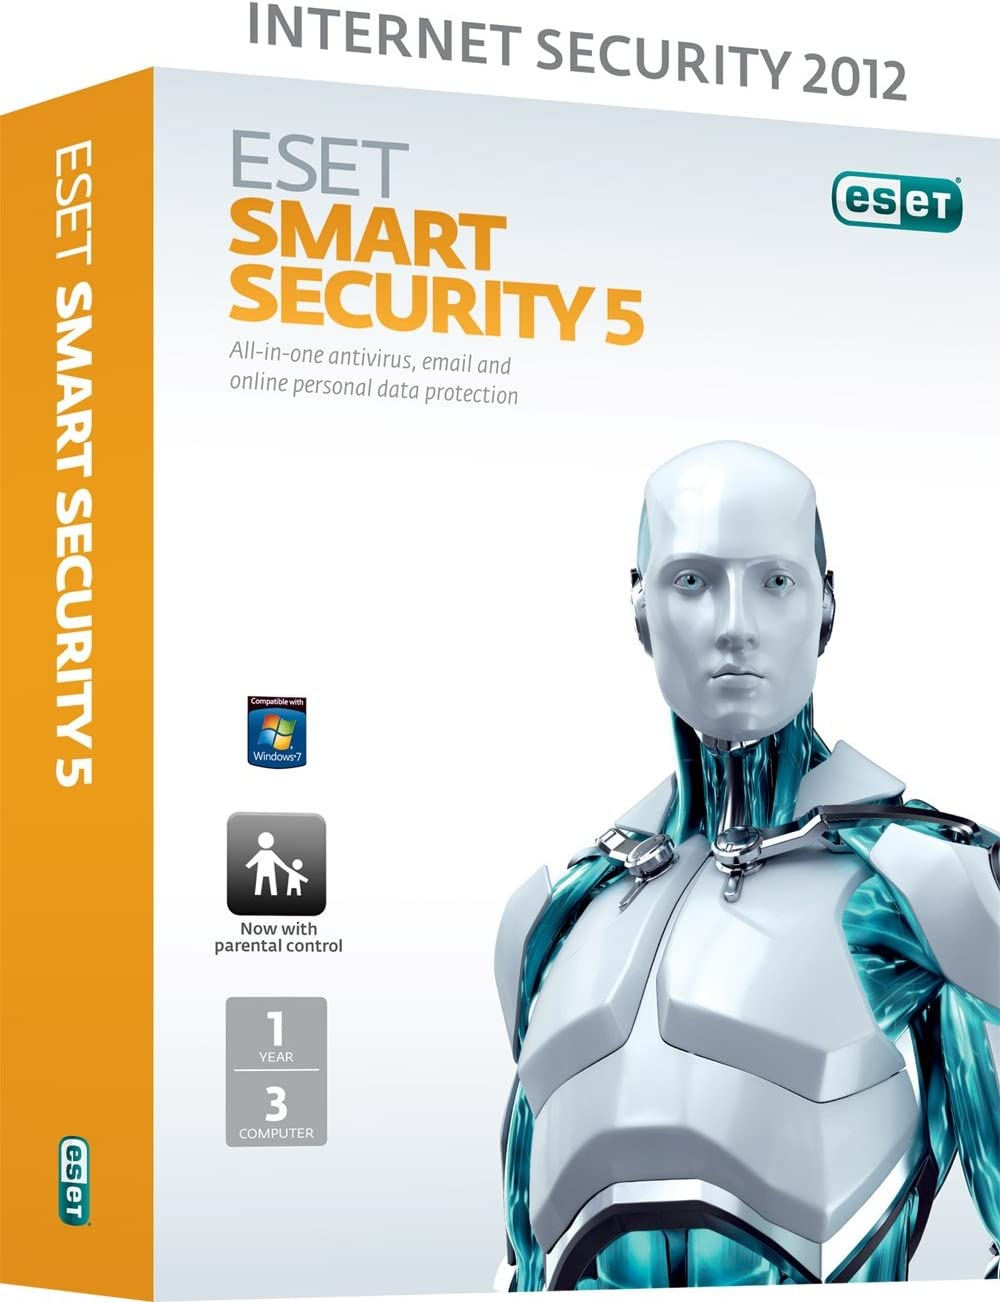 ESET Smart Security V5 3 User 1 Year (PC): Amazon.es: Software